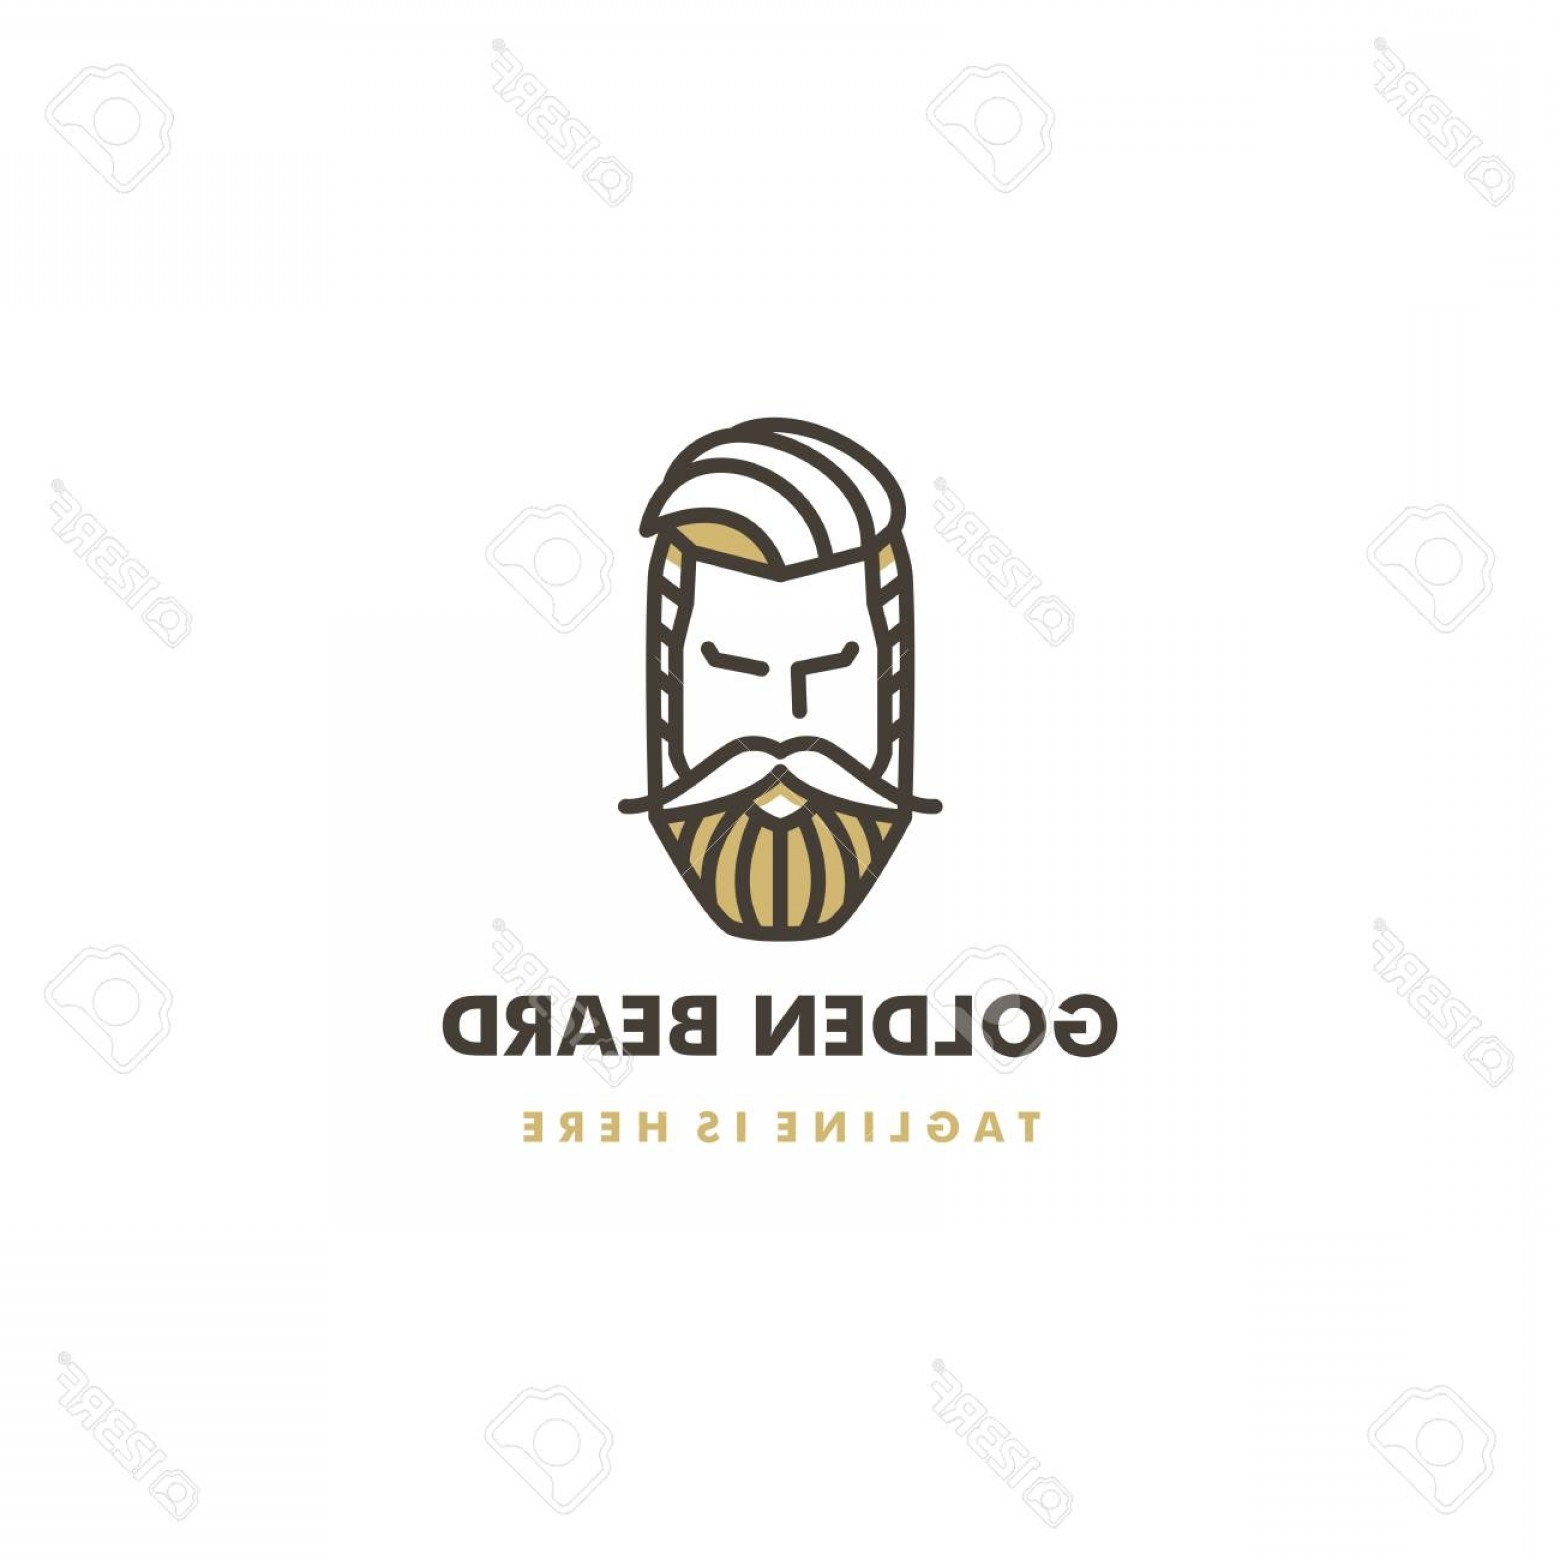 Golden Barber Vector: Photogolden Beard Man Barber Shop Pomade Logo